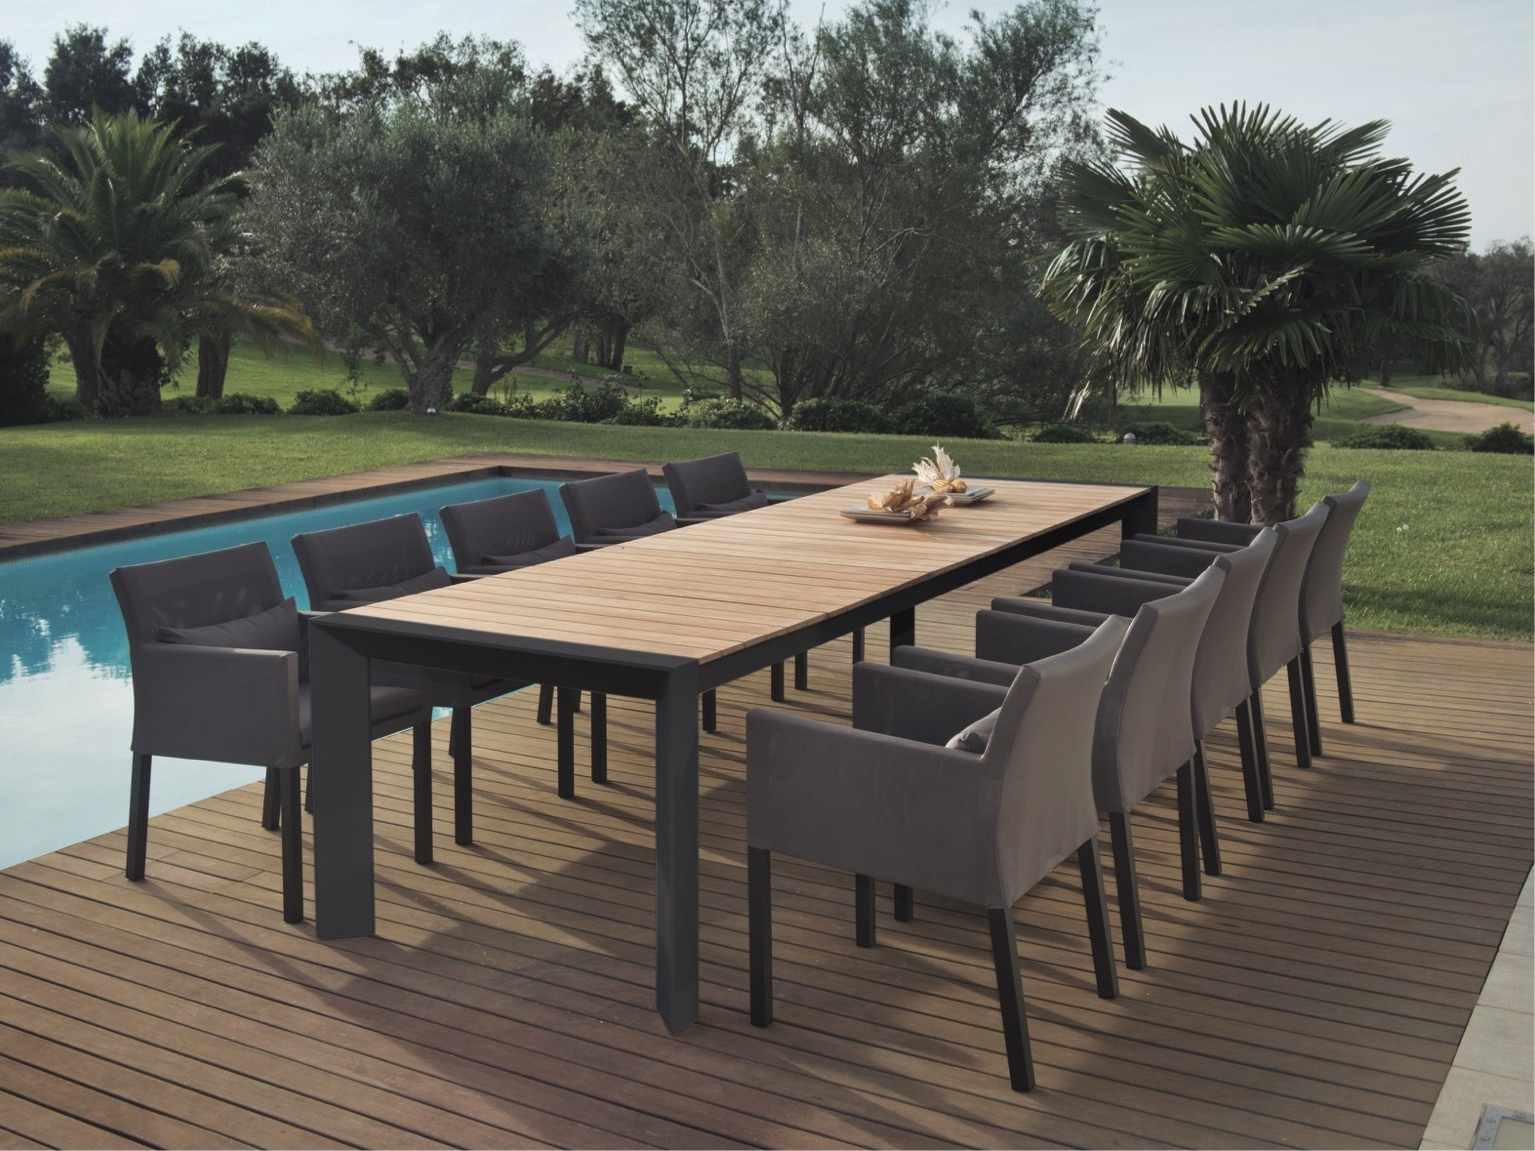 Outdoor Extendable Dining Tables Intended For Well Liked Alchemy Teak Dining Table – Couture Outdoor (View 22 of 25)